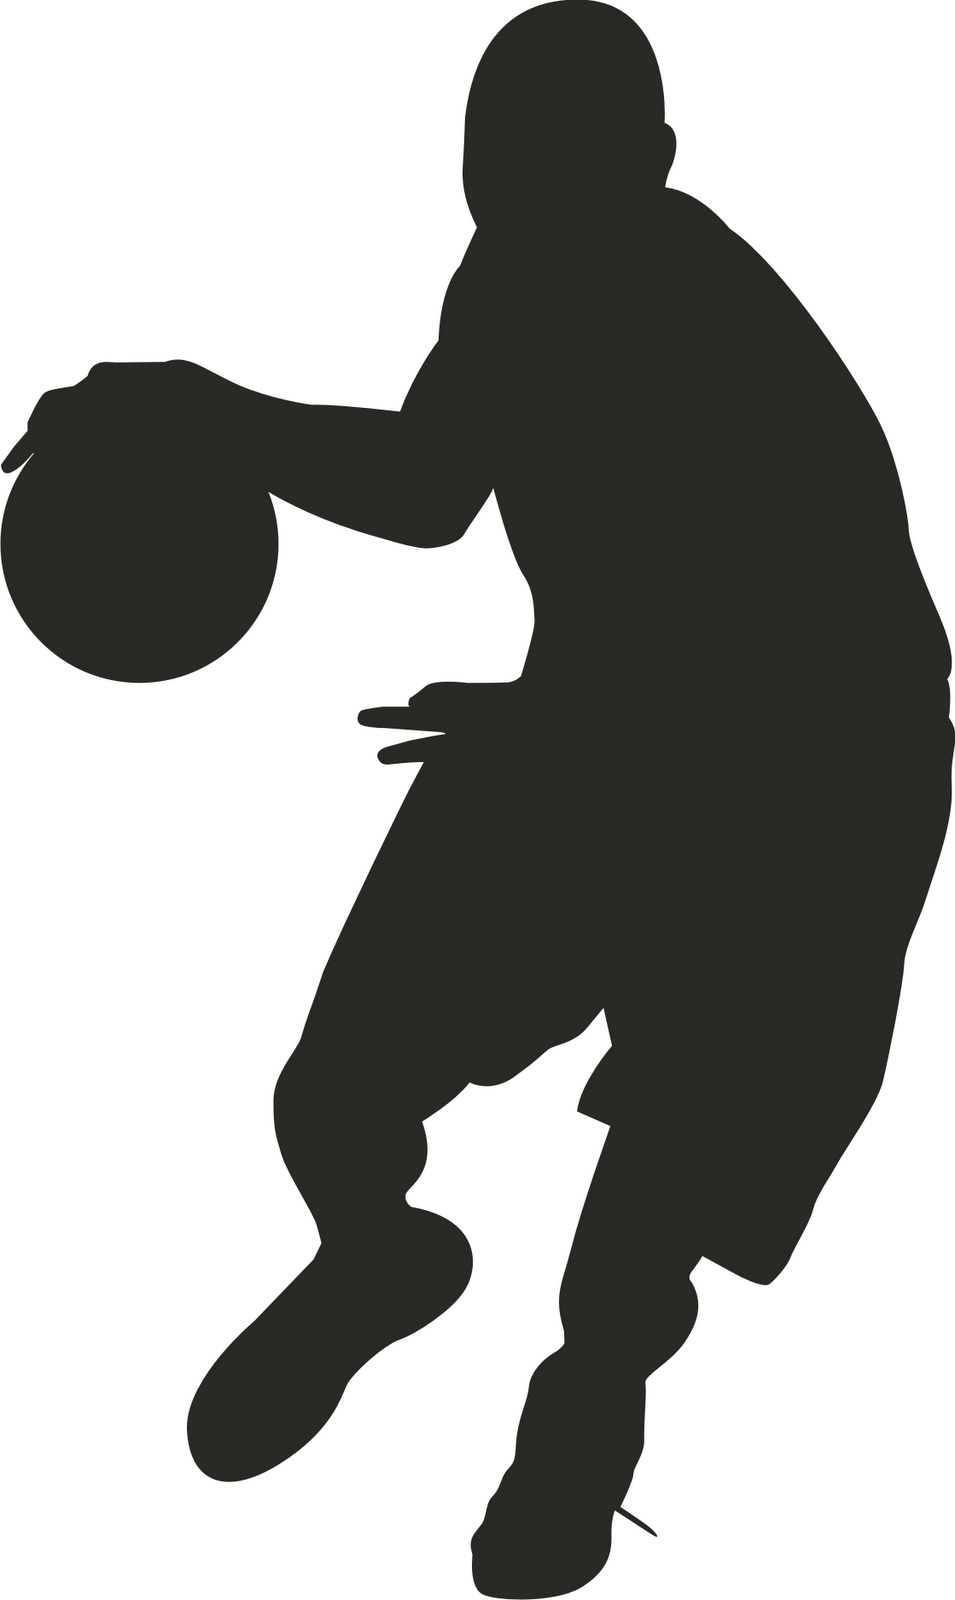 955x1600 Basketball Black White Basketball Player Clipart Black